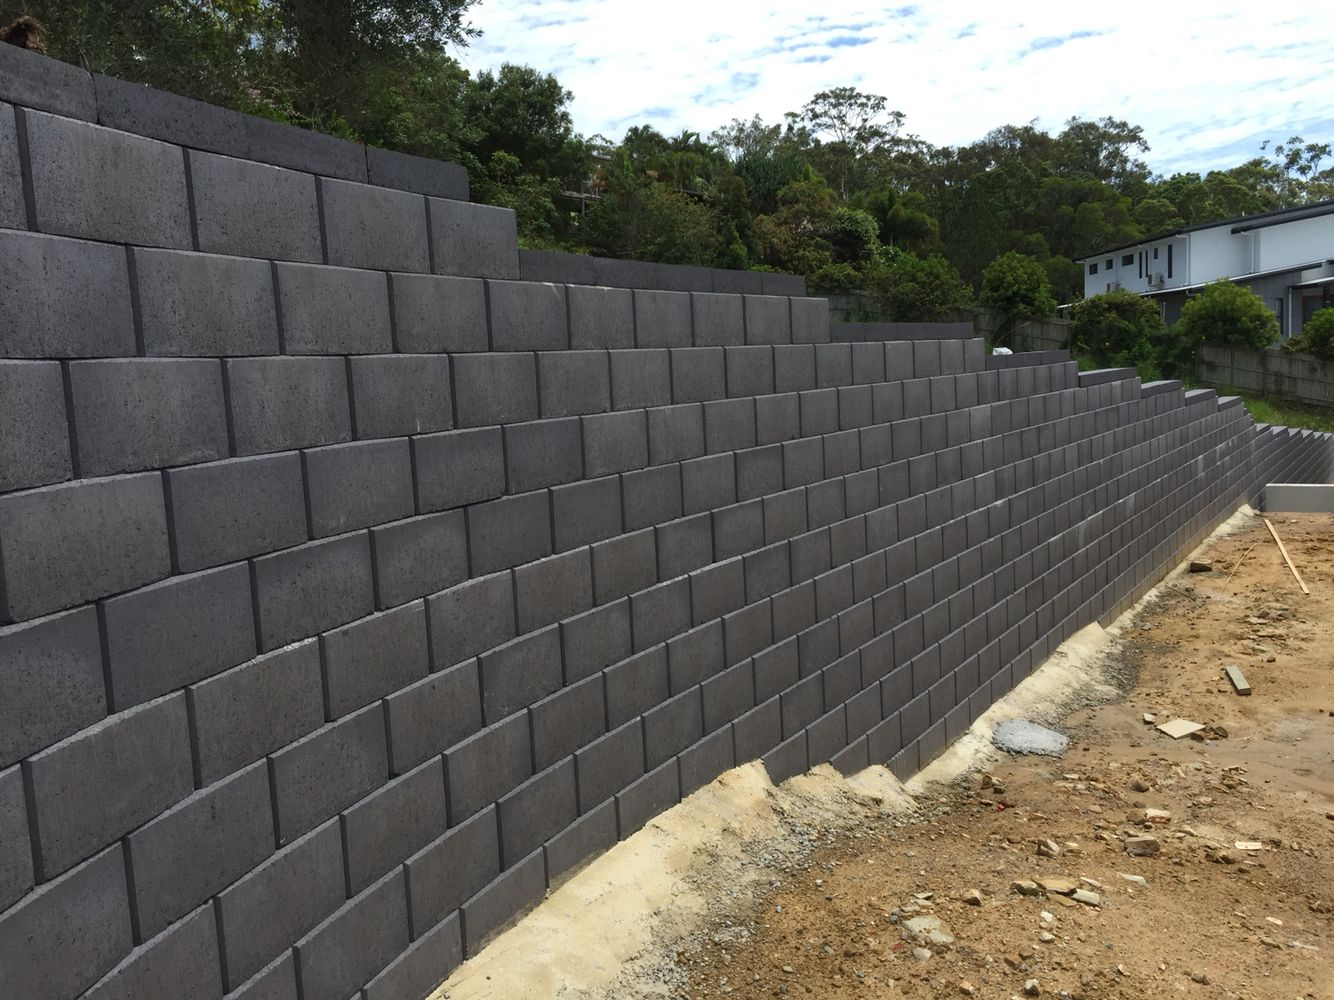 New Austral Heron Smooth Retaining Wall First Wall Of This Kind Constructed By Ilandscape Co Concrete Retaining Walls Retaining Wall Cinder Block Walls